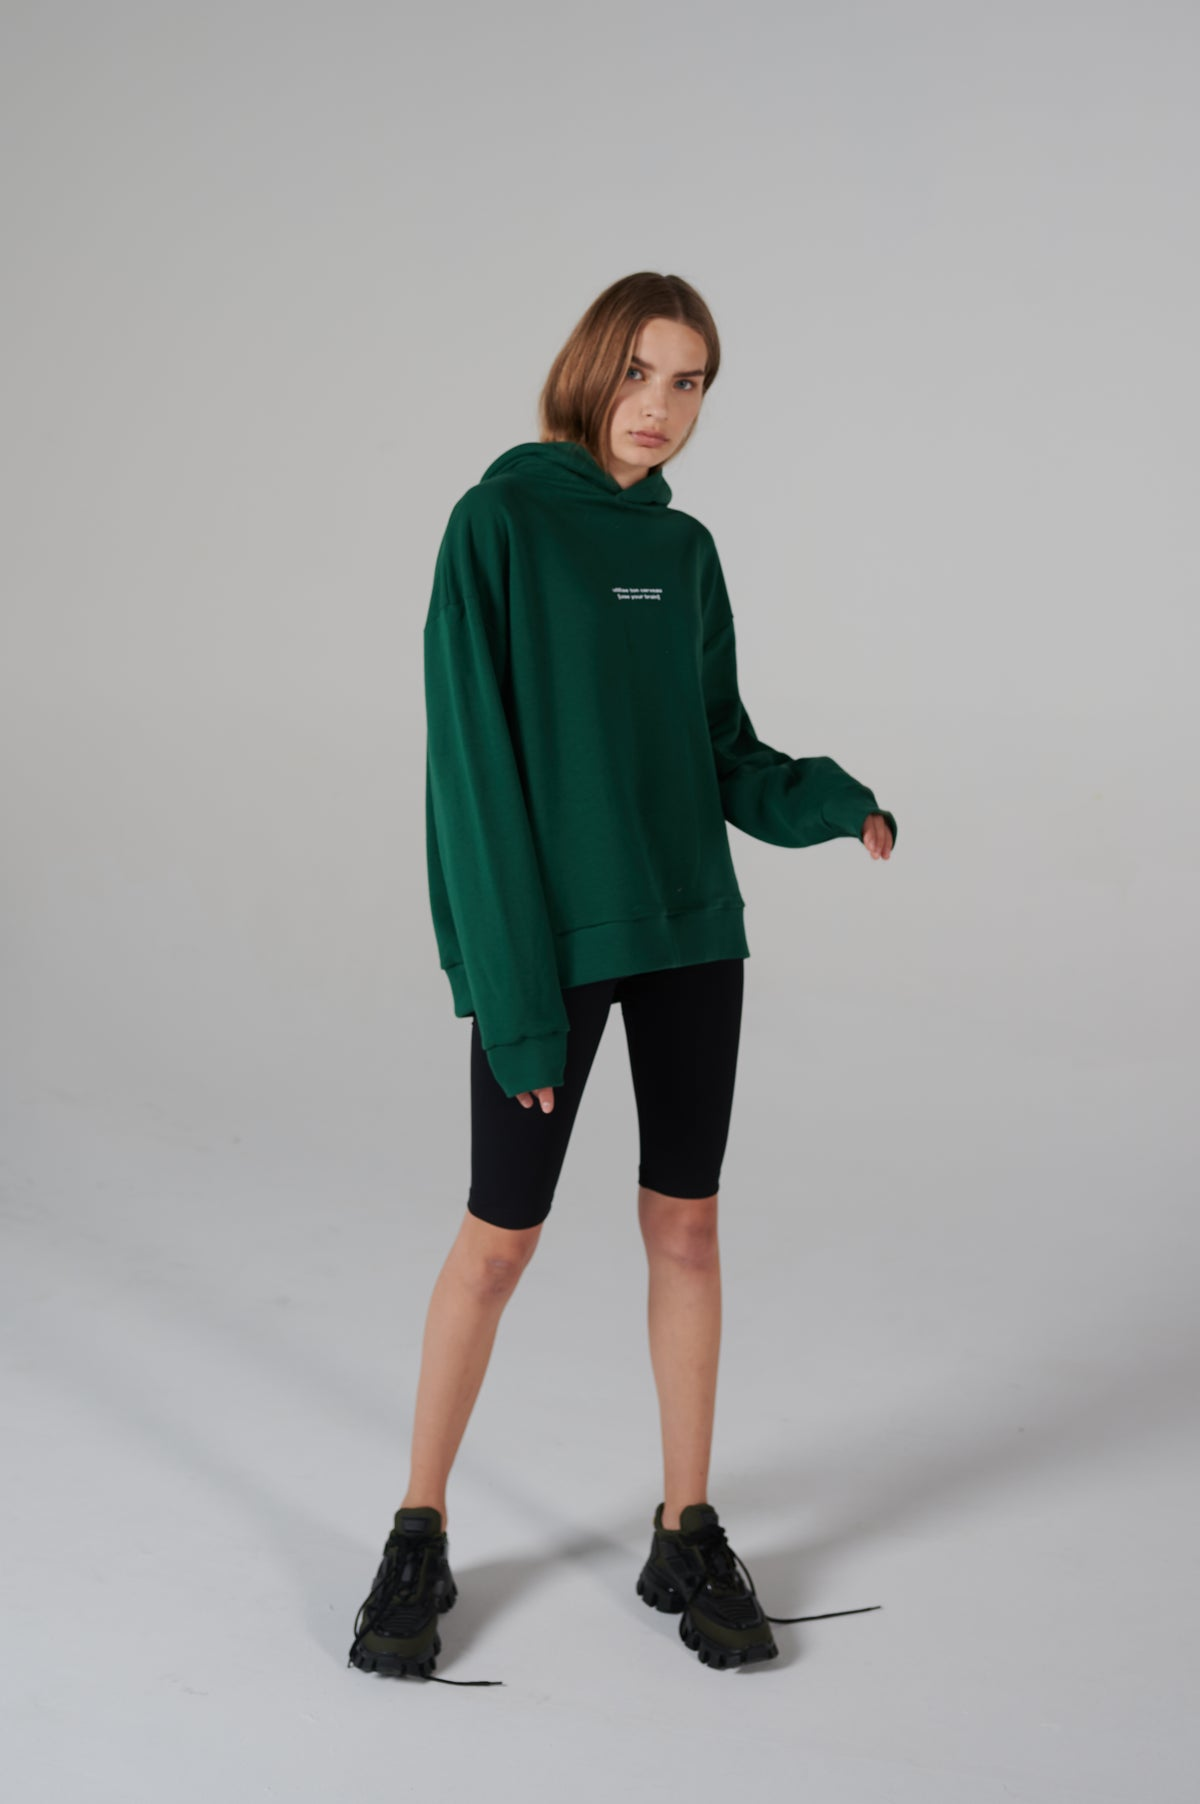 french-series-brain-hoodie-forest-green-boxy-shape-look.jpg